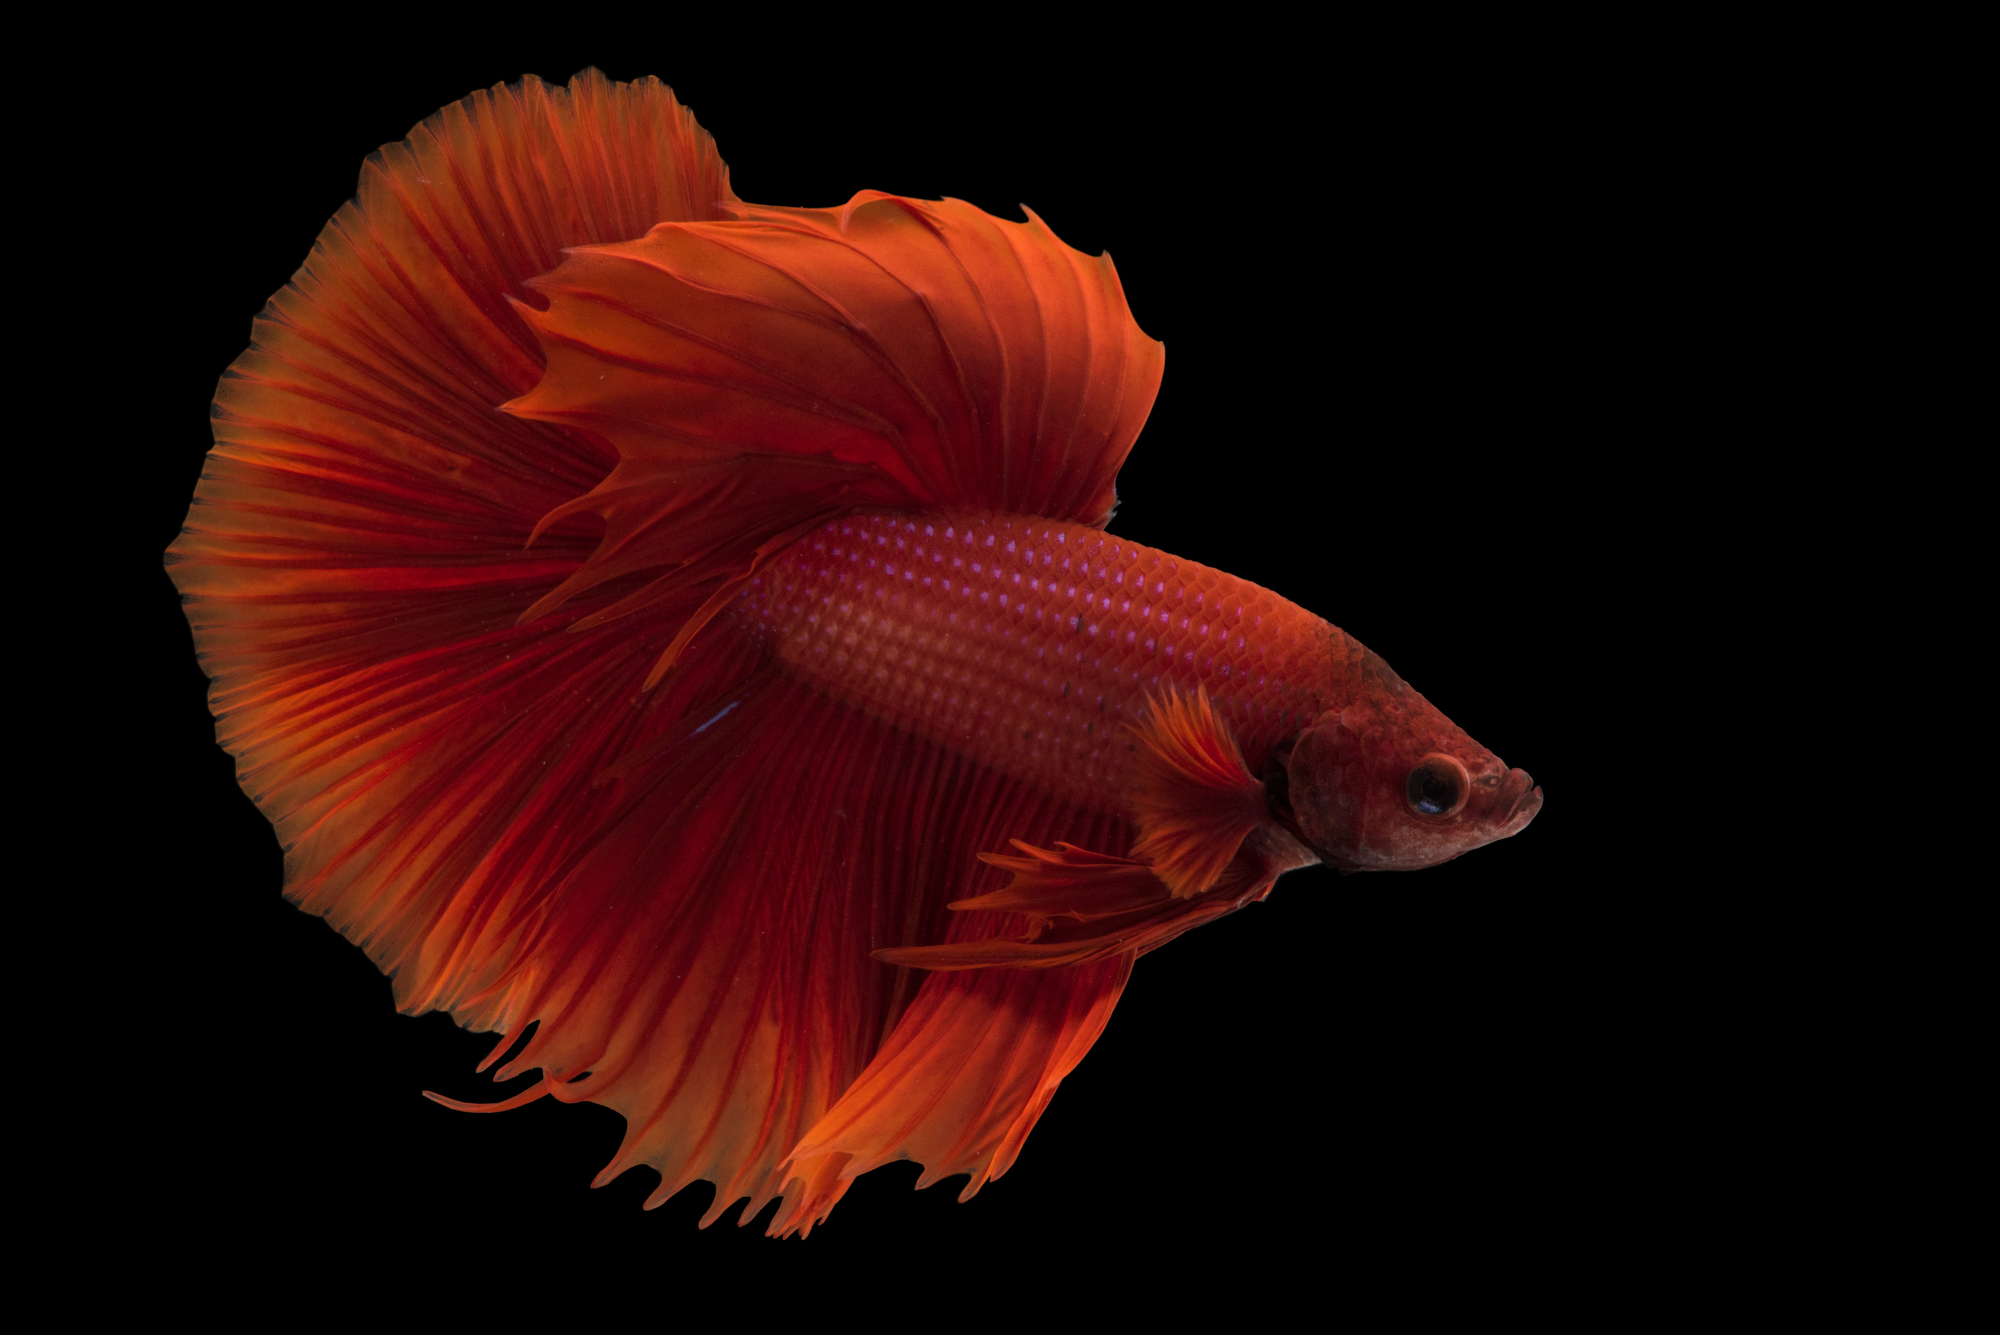 siamese fighting fish red